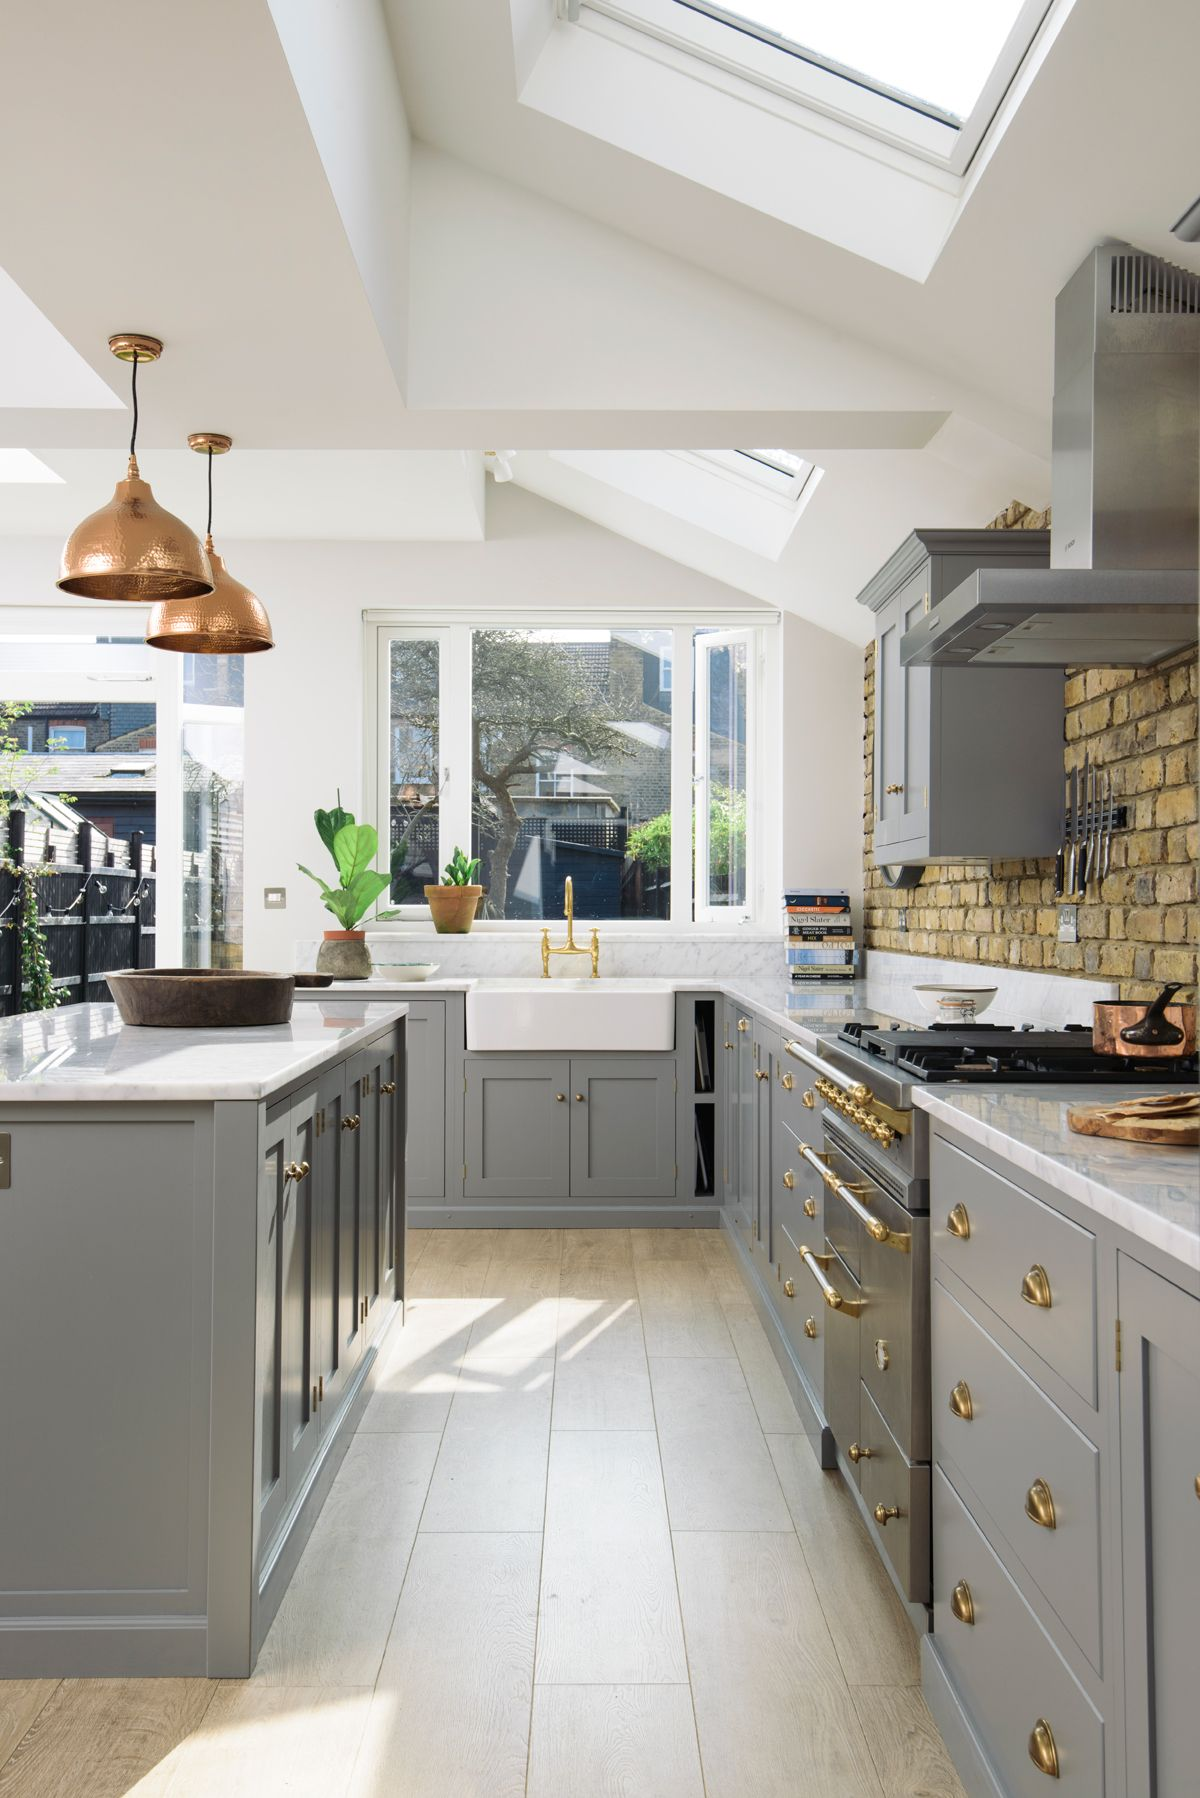 This wonderful kitchen extension in South London was filled with sunshine and style; grey cupboards with brass details and Carrara marble worktops